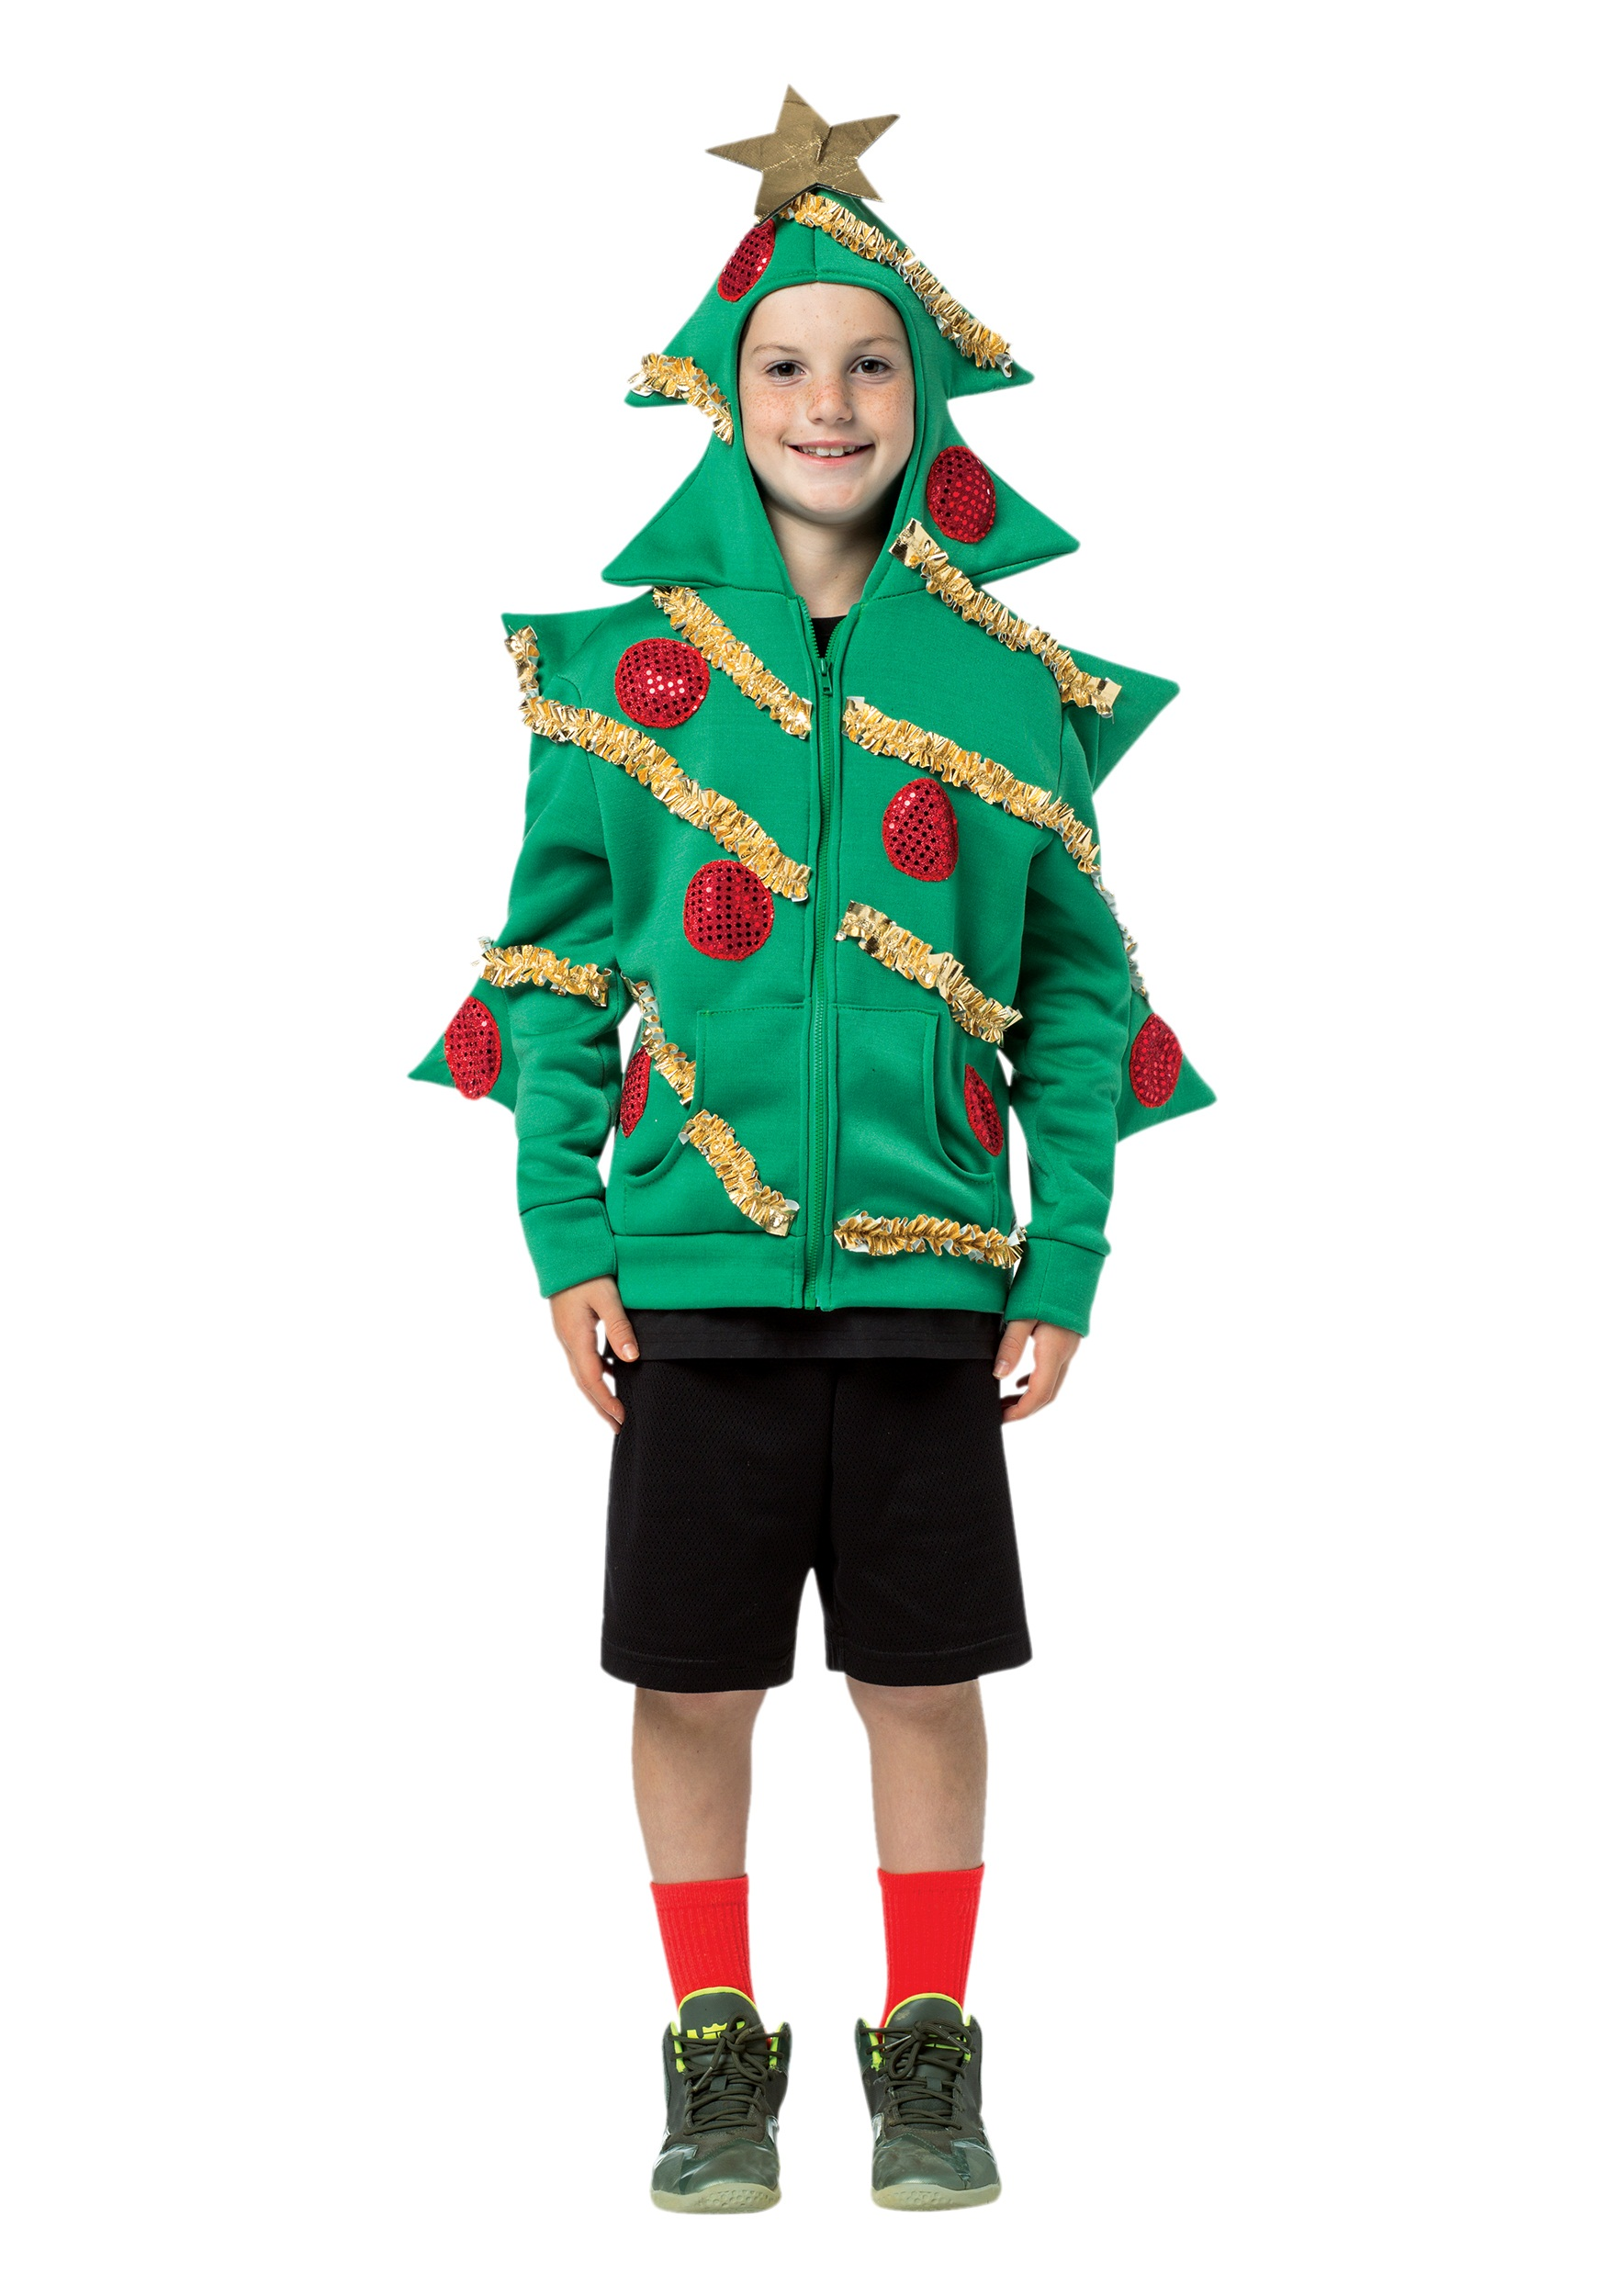 Child Christmas Tree Hooded Sweatshirt